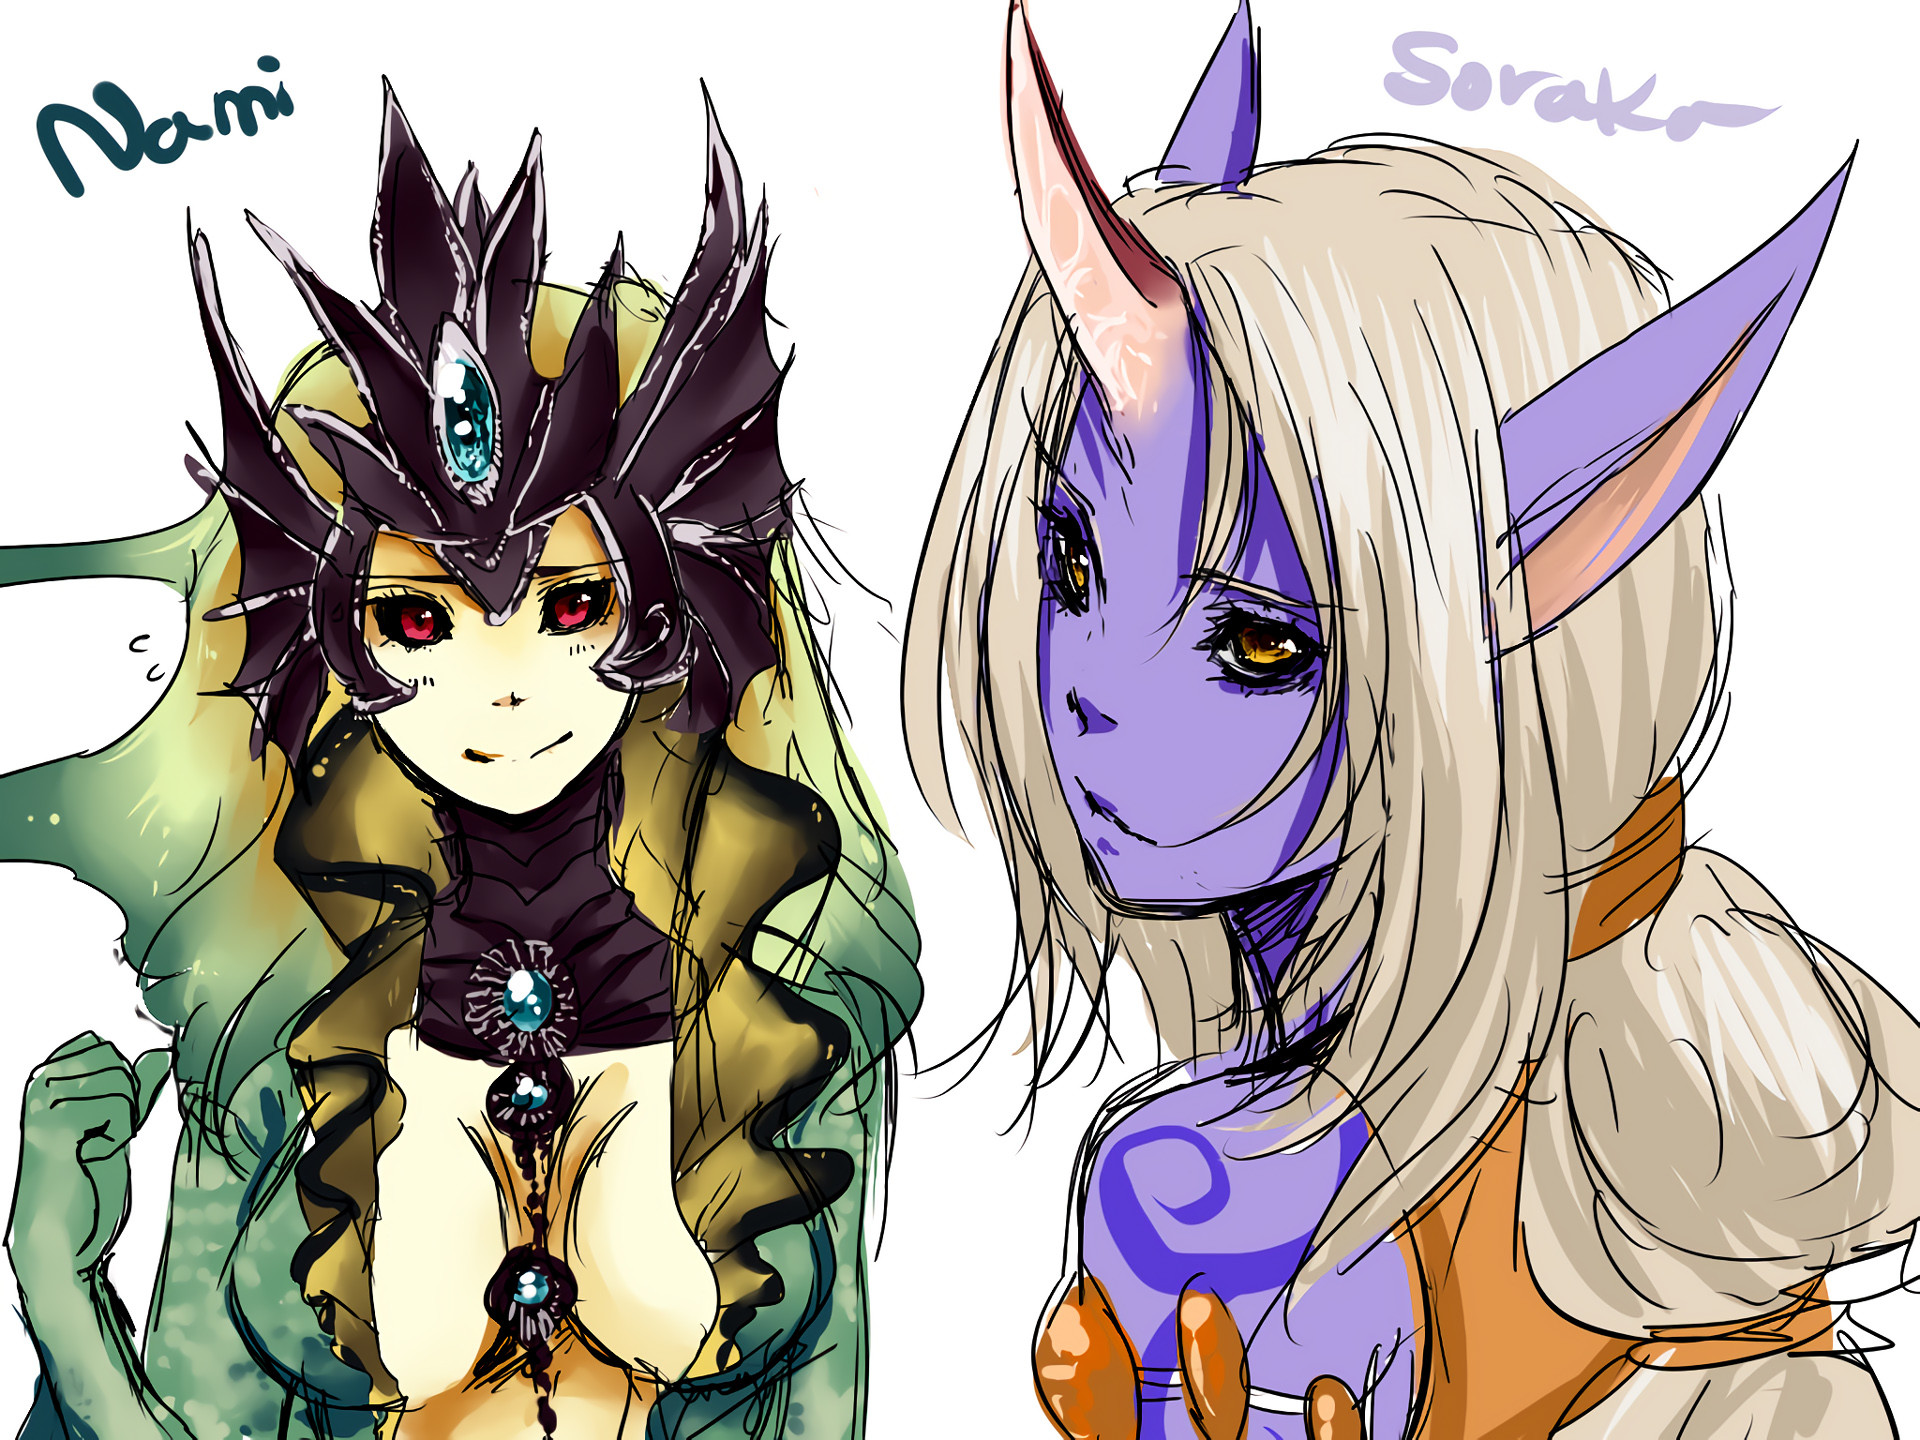 1920x1440 Soraka & Nami by Minari-hanul HD Wallpaper Fan Art Artwork League of  Legends lol